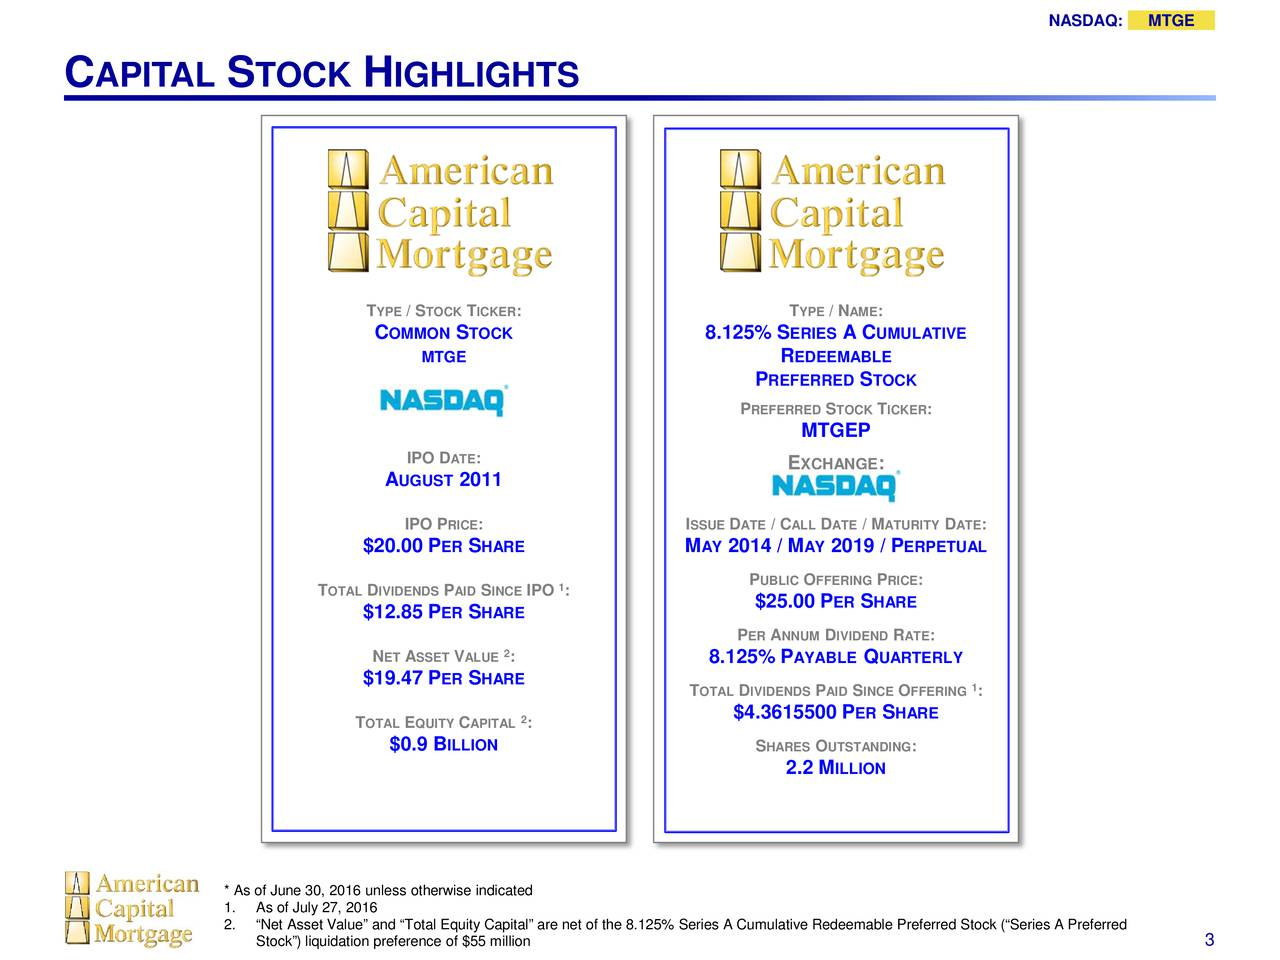 C APITAL S TOCK H IGHLIGHTS TYPE / TOCKTICKE: TYPE/ NAME: C OMMON STOCK 8.125% SERIES A CUMULATIVE MTGE R EDEEMABLE PREFERRED STOCK E XCHANGE : PREFERREDSTOCK TICKE: MTGEP IPO ATE: E XCHANGE : A UGUST 2011 IPO PRIC: SSUEDATE/ CALLDATE/ ATURITD AT: $20.00 PER SHARE MAY 2014 / MAY 2019 / ERPETUAL 1 PUBLICOFFERINP RIC: TOTALD IVIDENPSAISINCEIPO : $25.00 PER SHARE $12.85 PER SHARE PERA NNUMDIVIDENRATE: 2 NETA SSETVALUE: 8.125% P AYABLE Q UARTERLY $19.47 PER SHARE 1 TOTALDIVIDENDPAIDSINCEOFFERING: 2 $4.3615500 PER SHARE TOTALEQUITYCAPITAL: $0.9 BILLION SHARESOUTSTANDIN: 2.2 MILLION * As of June 30, 2016 unless otherwise indicated 1. As of July 27, 2016 2. Net Asset Value and Total Equity Capital are net of the 8.125%Series A Cumulative Redeemable Preferred Stock (Series A Preferred Stock) liquidation preference of$55 million 3